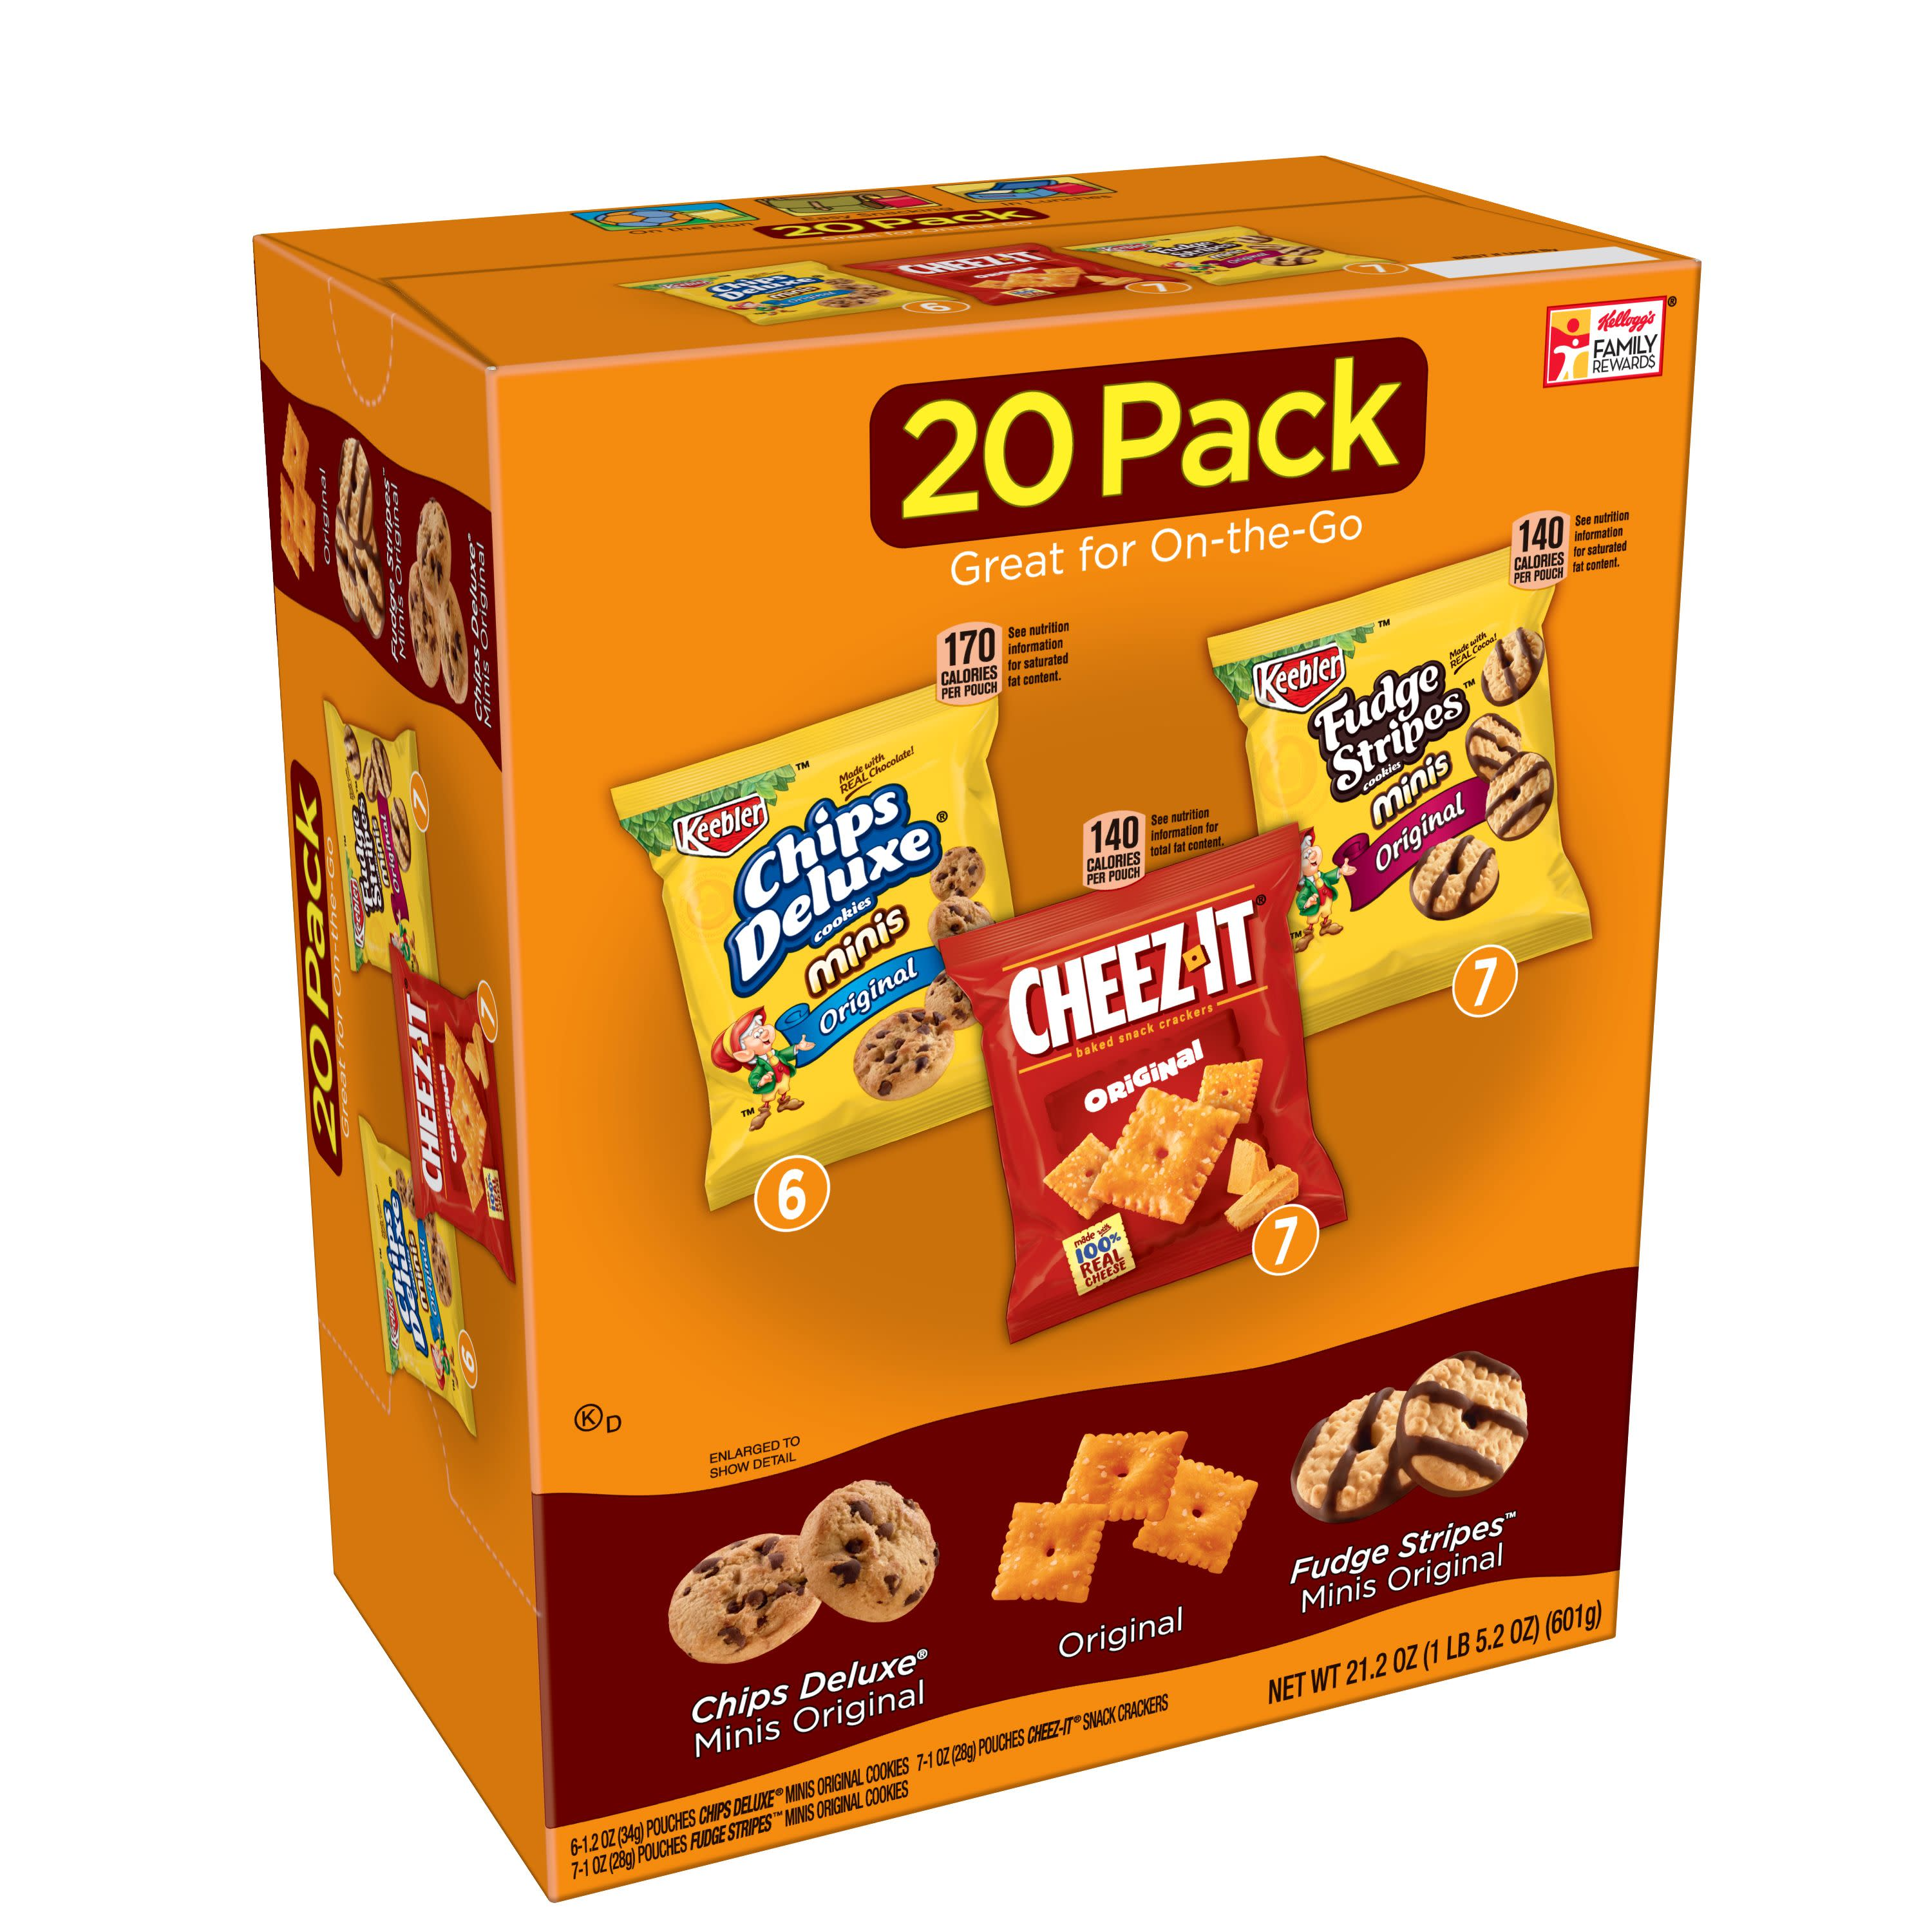 Chips Deluxe/Cheez-It/Fudge Stripes Variety Pack 20 ct Bags